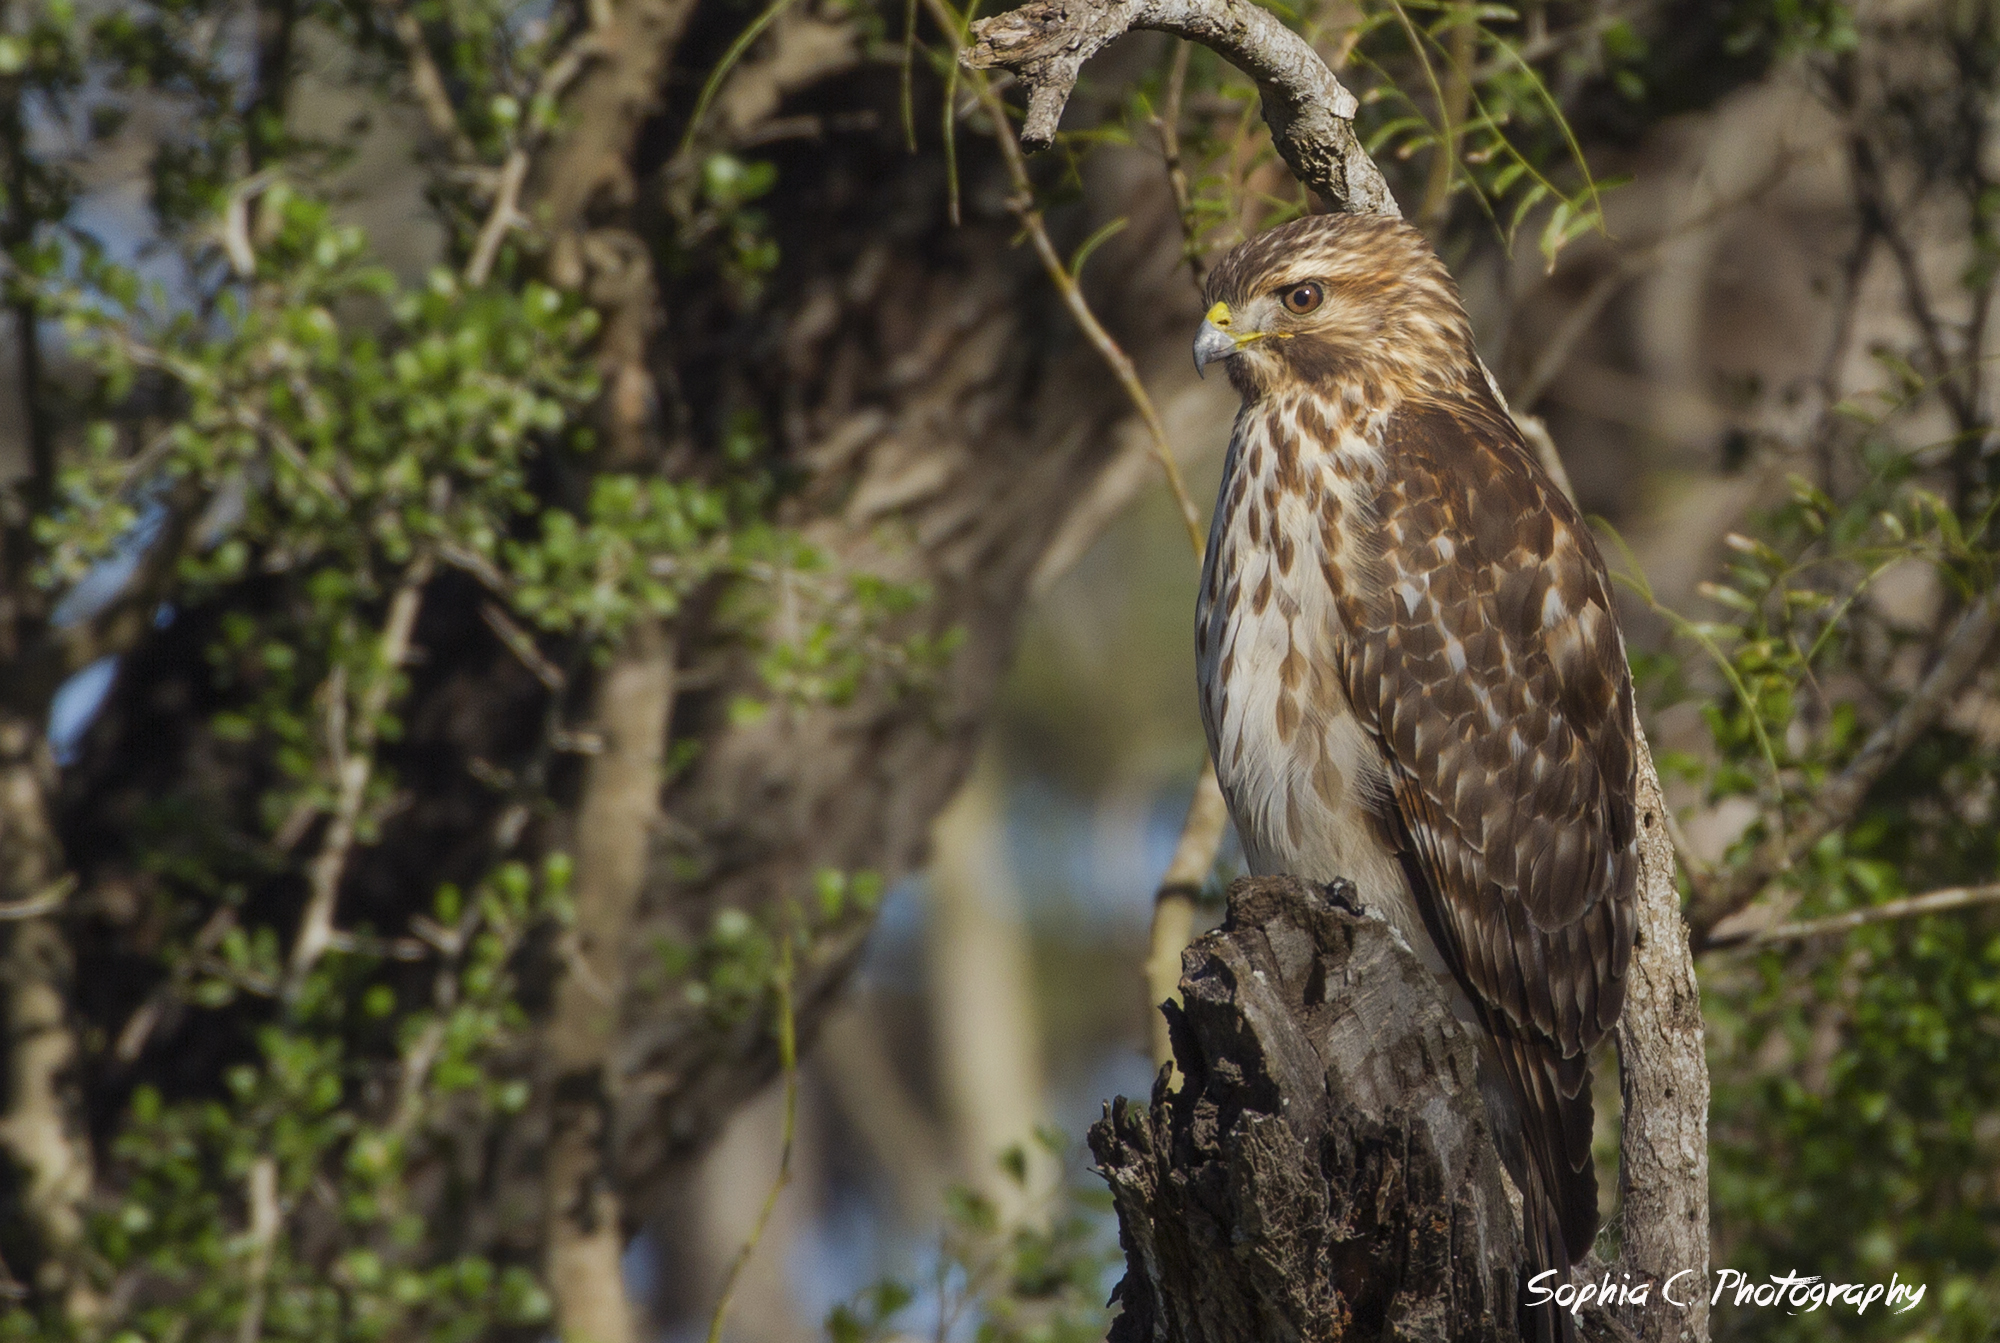 Broad-winged hawk, photographed by Sophia.